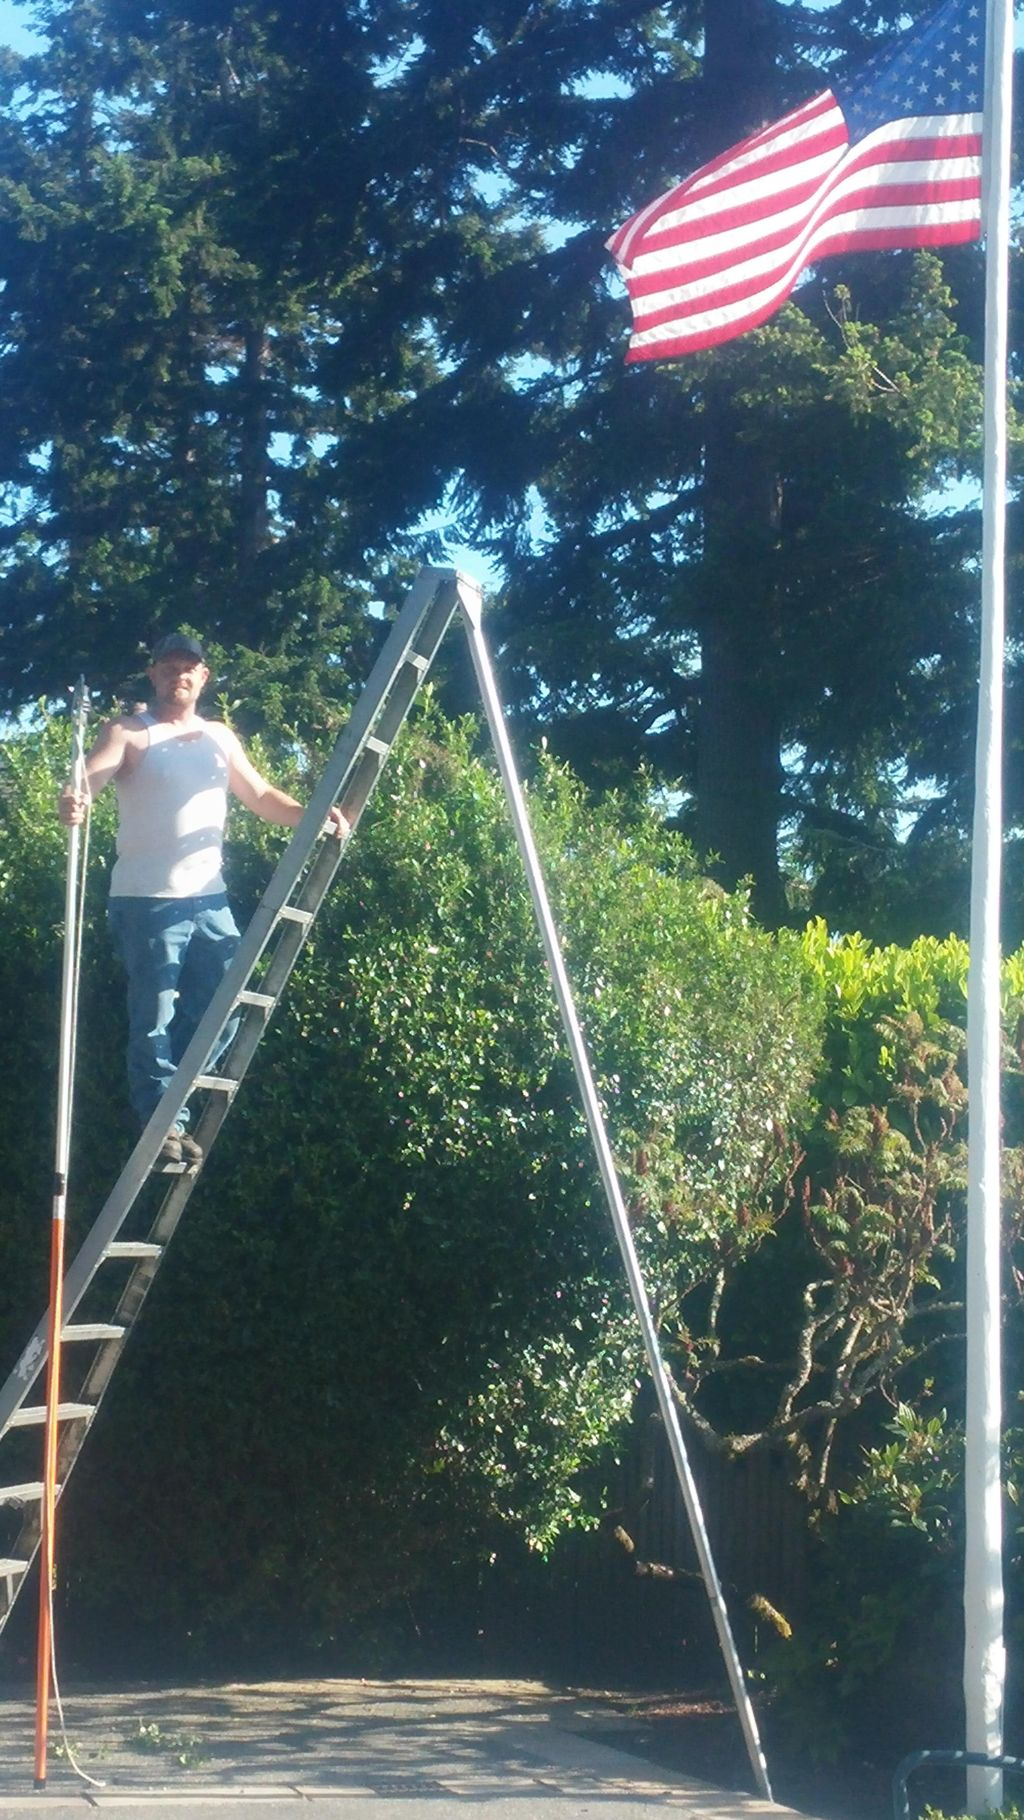 Beam's Lawn and Landscape Care